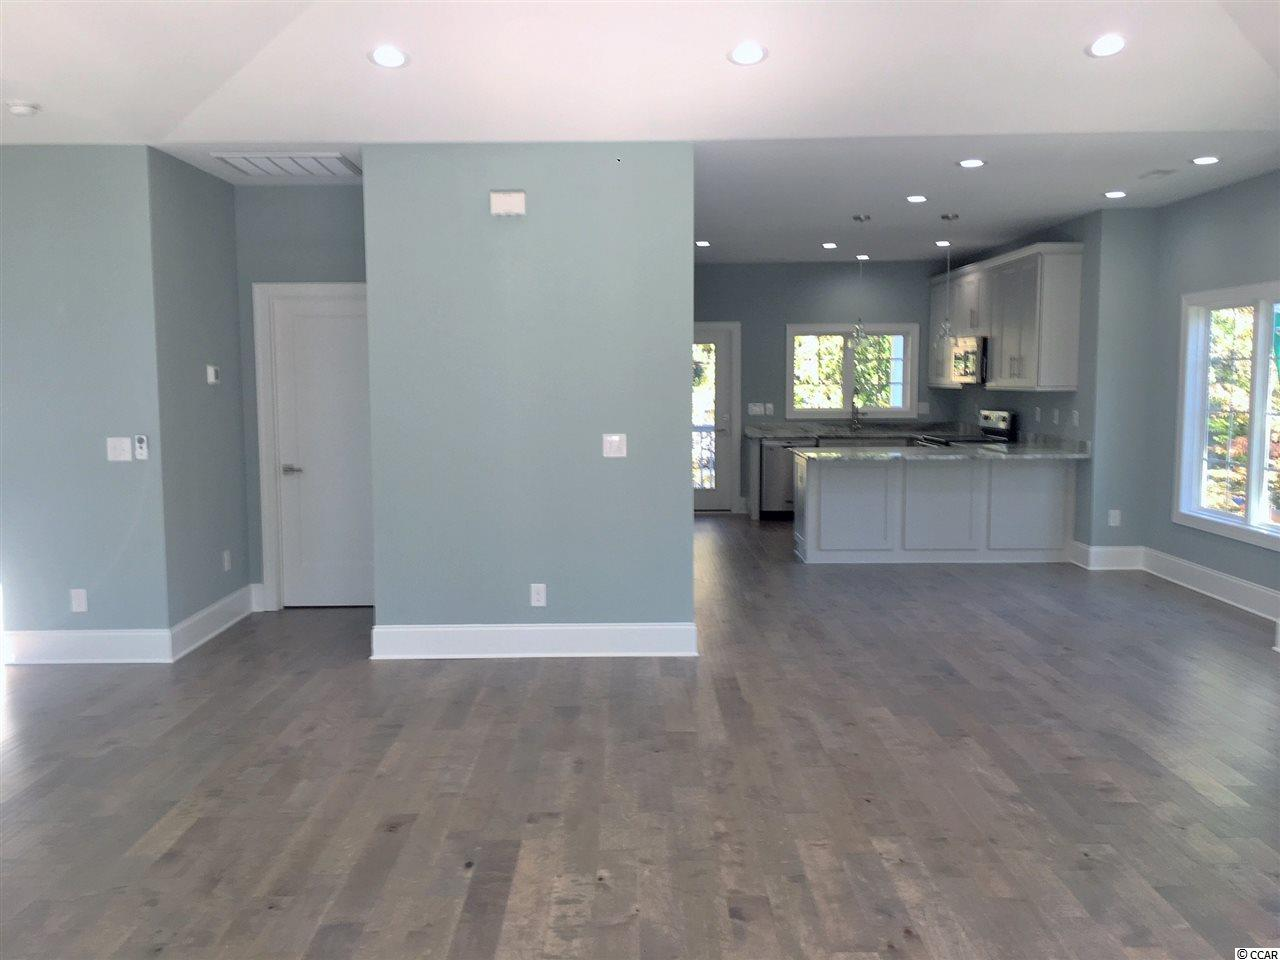 Additional photo for property listing at 628 1st Ave N 628 1st Ave N Surfside Beach, South Carolina 29575 United States